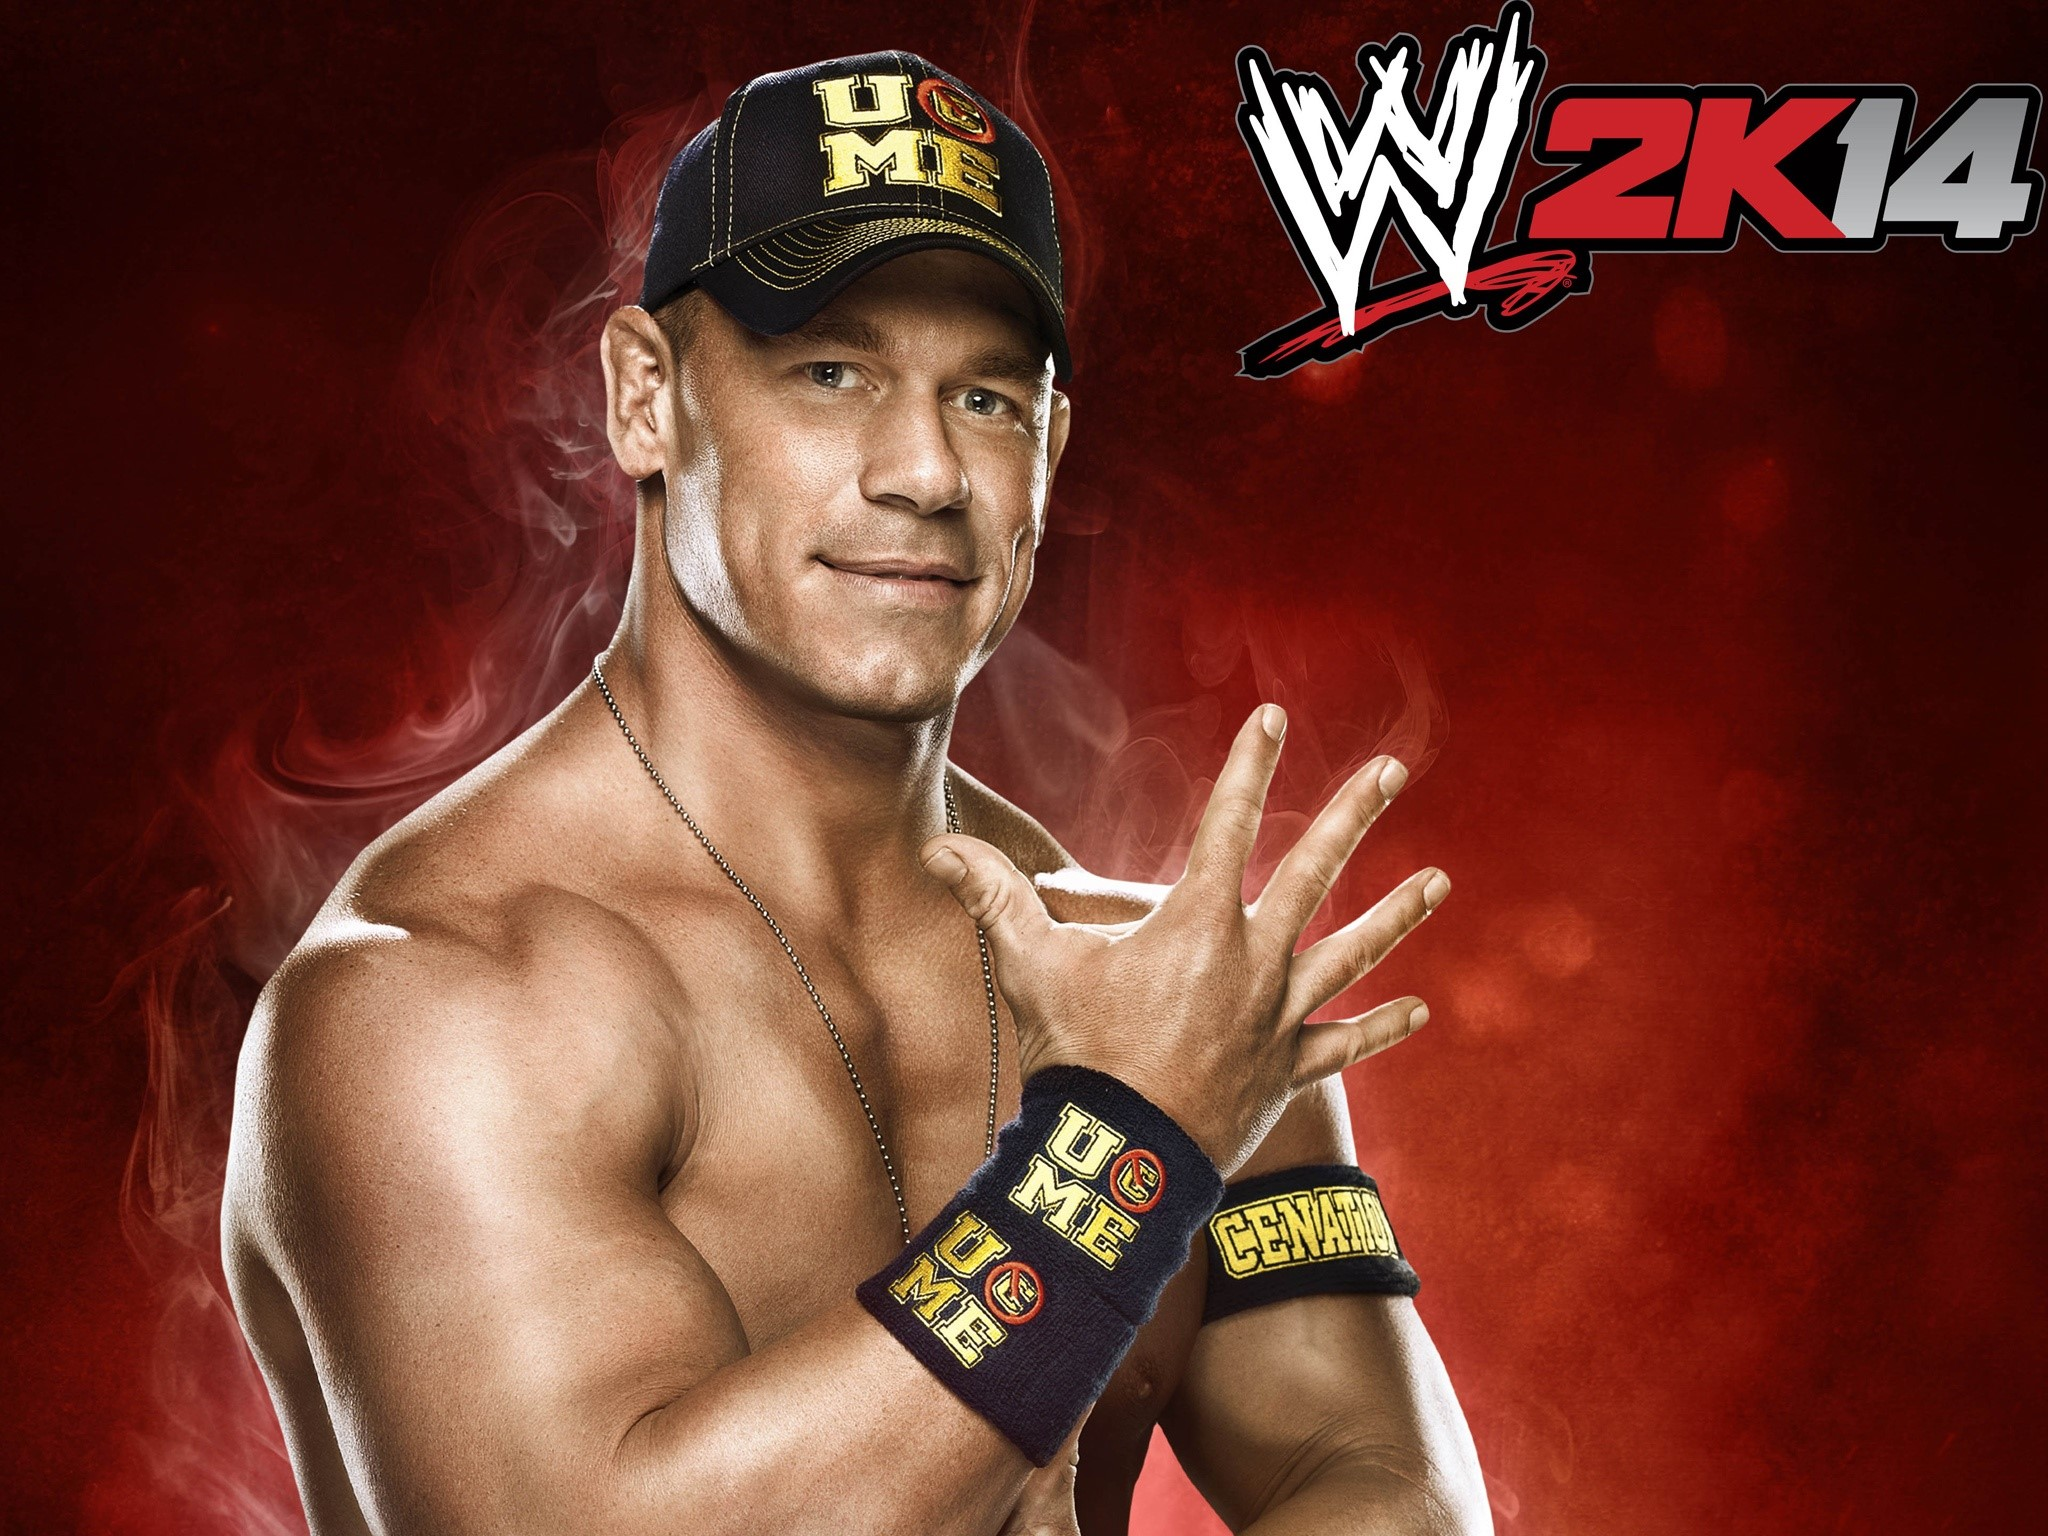 Wallpaper John Cena WWE